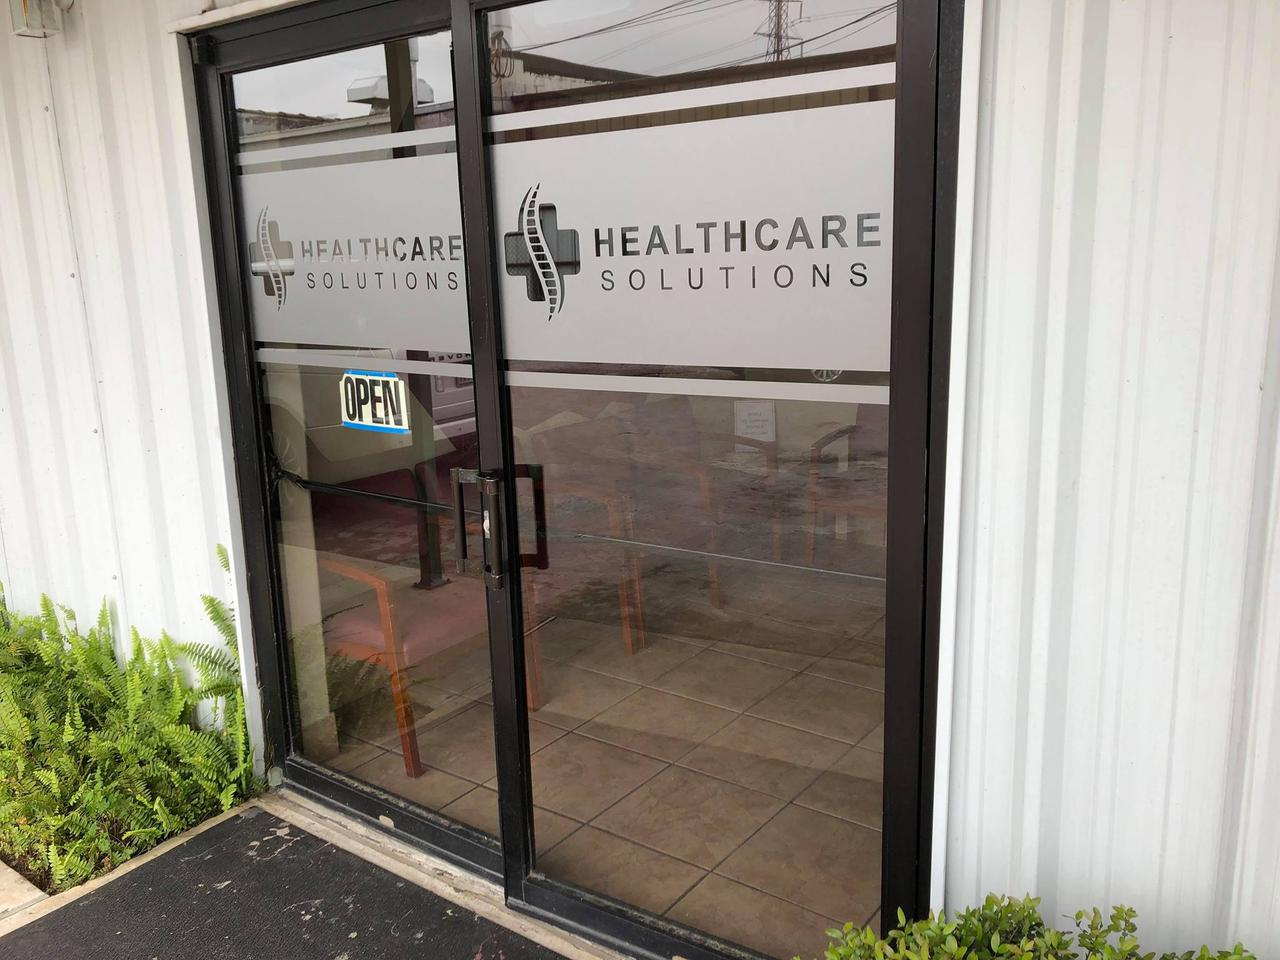 entry to healthcare solutions chiropractic care center in houston tx